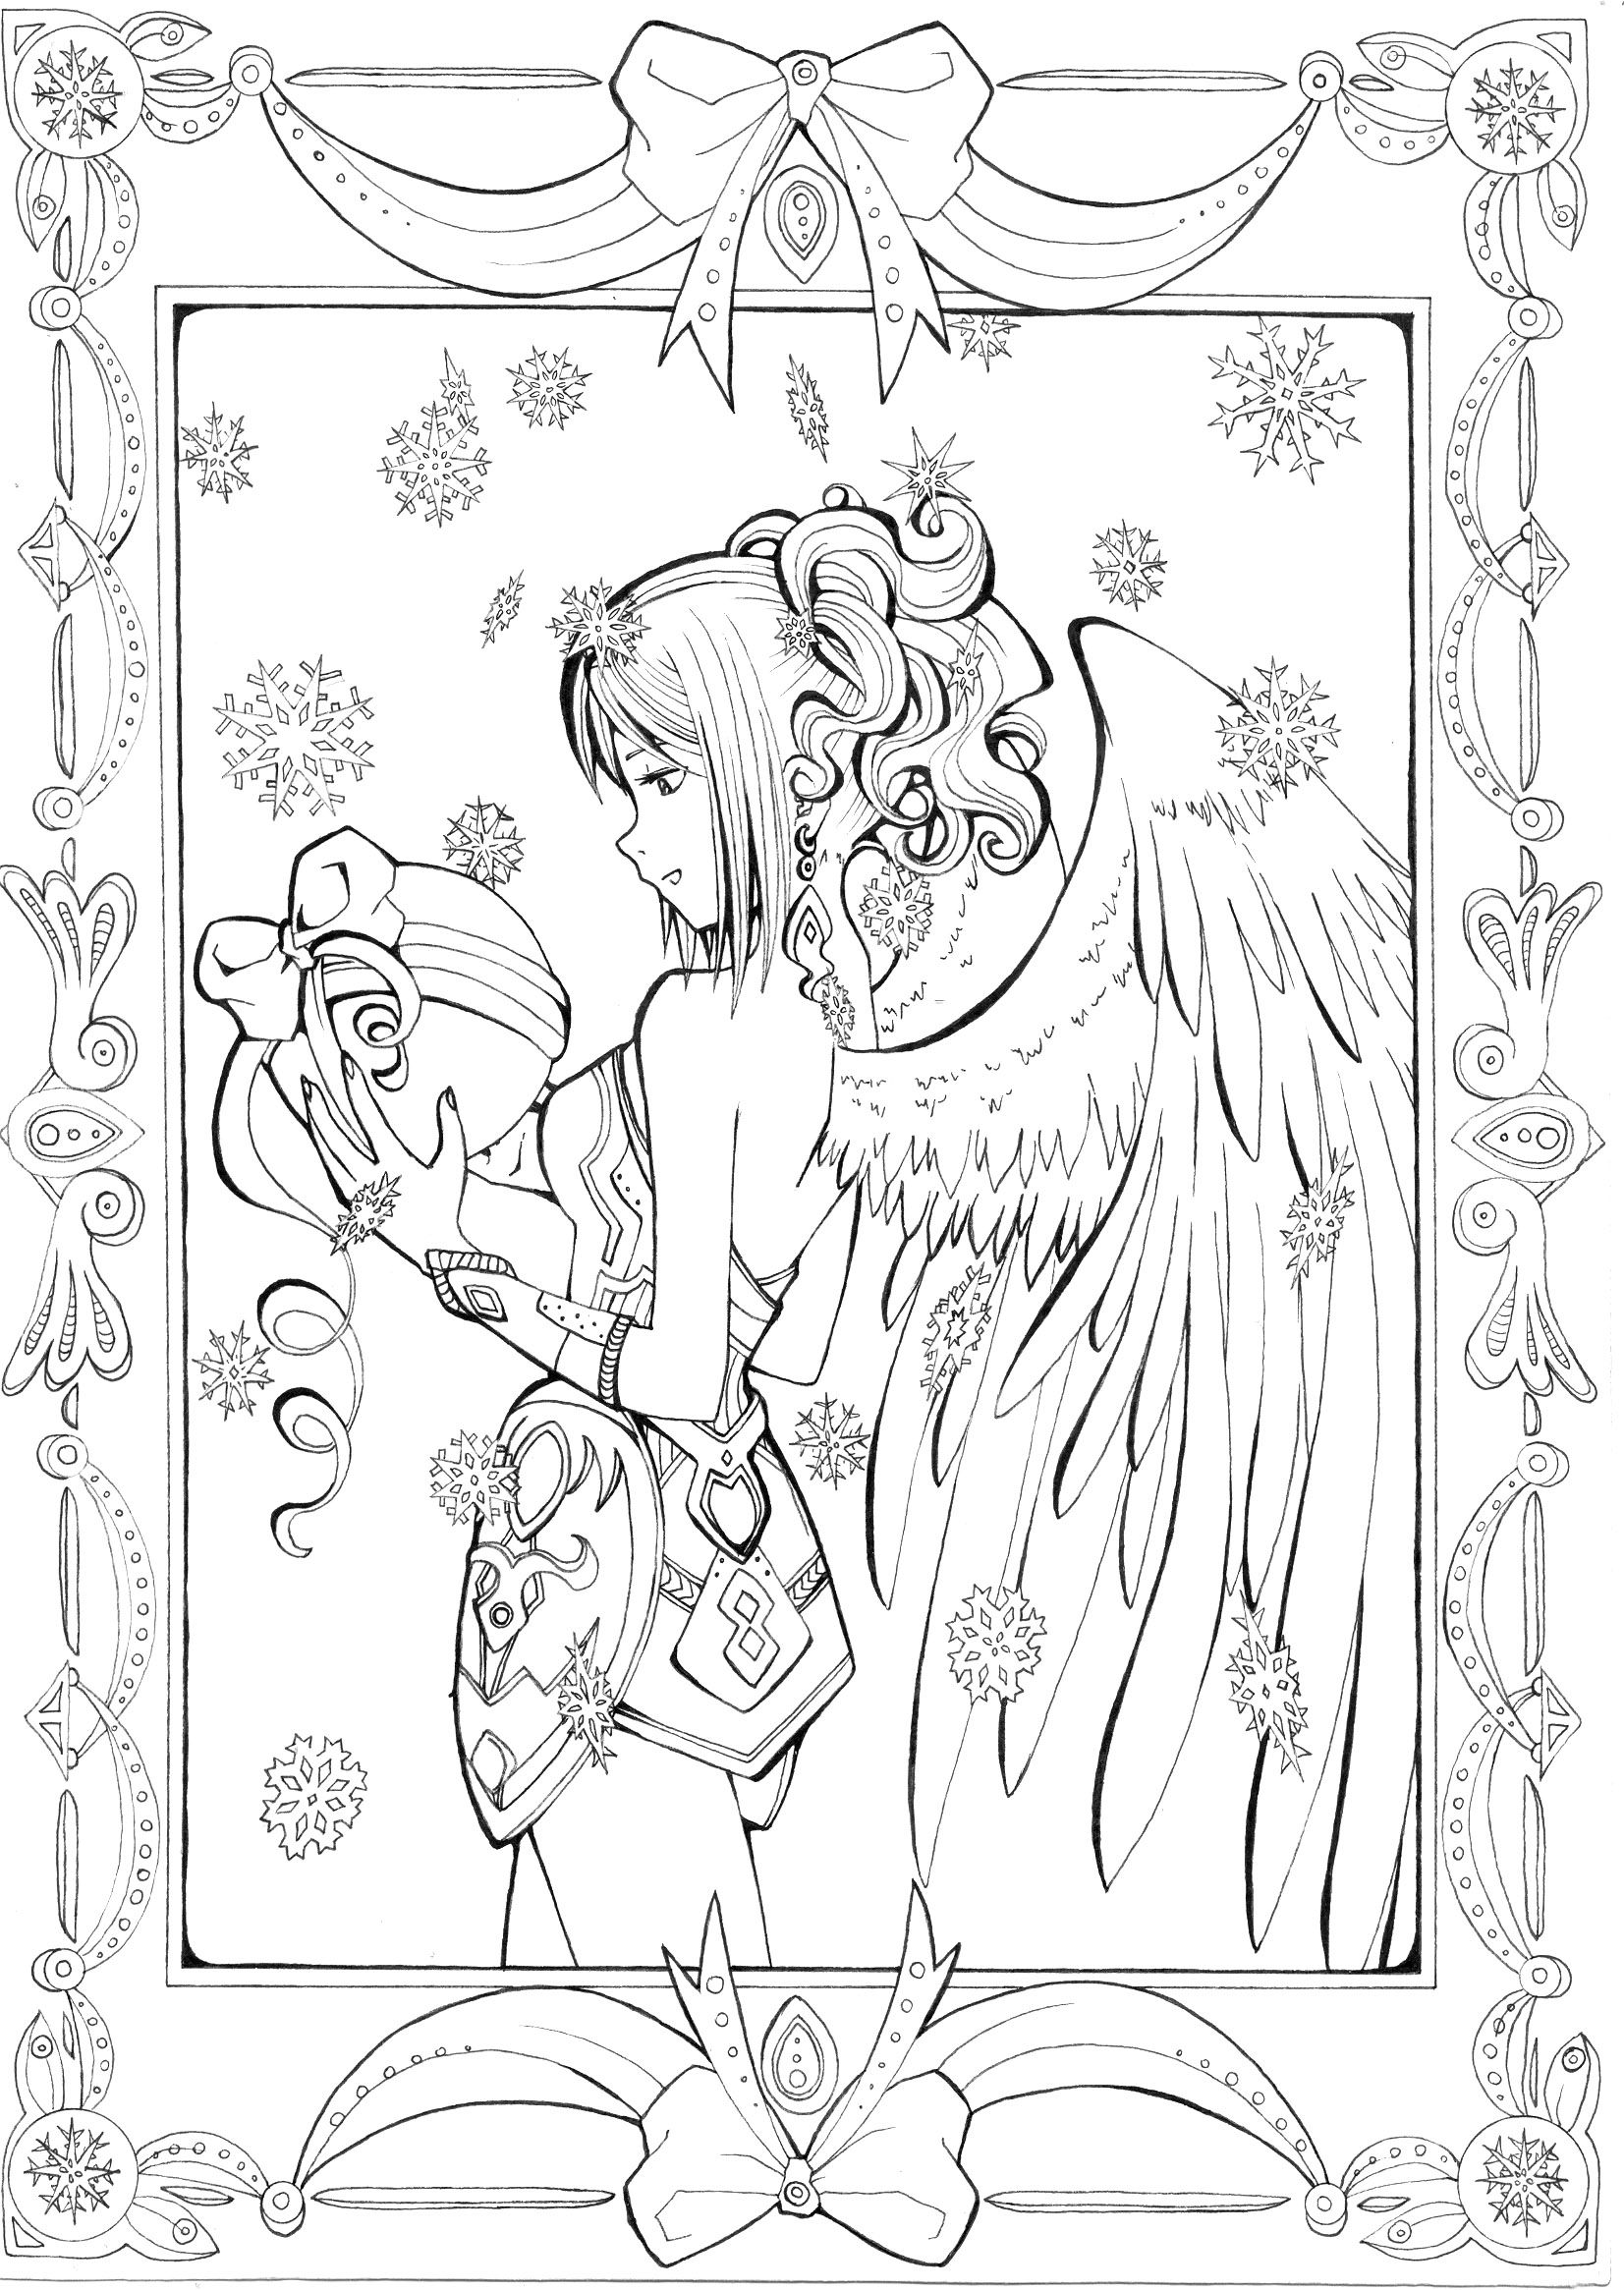 for_me__lineart_by_AgataKa19.jpg (1653×2331) | coloriages 2 ...